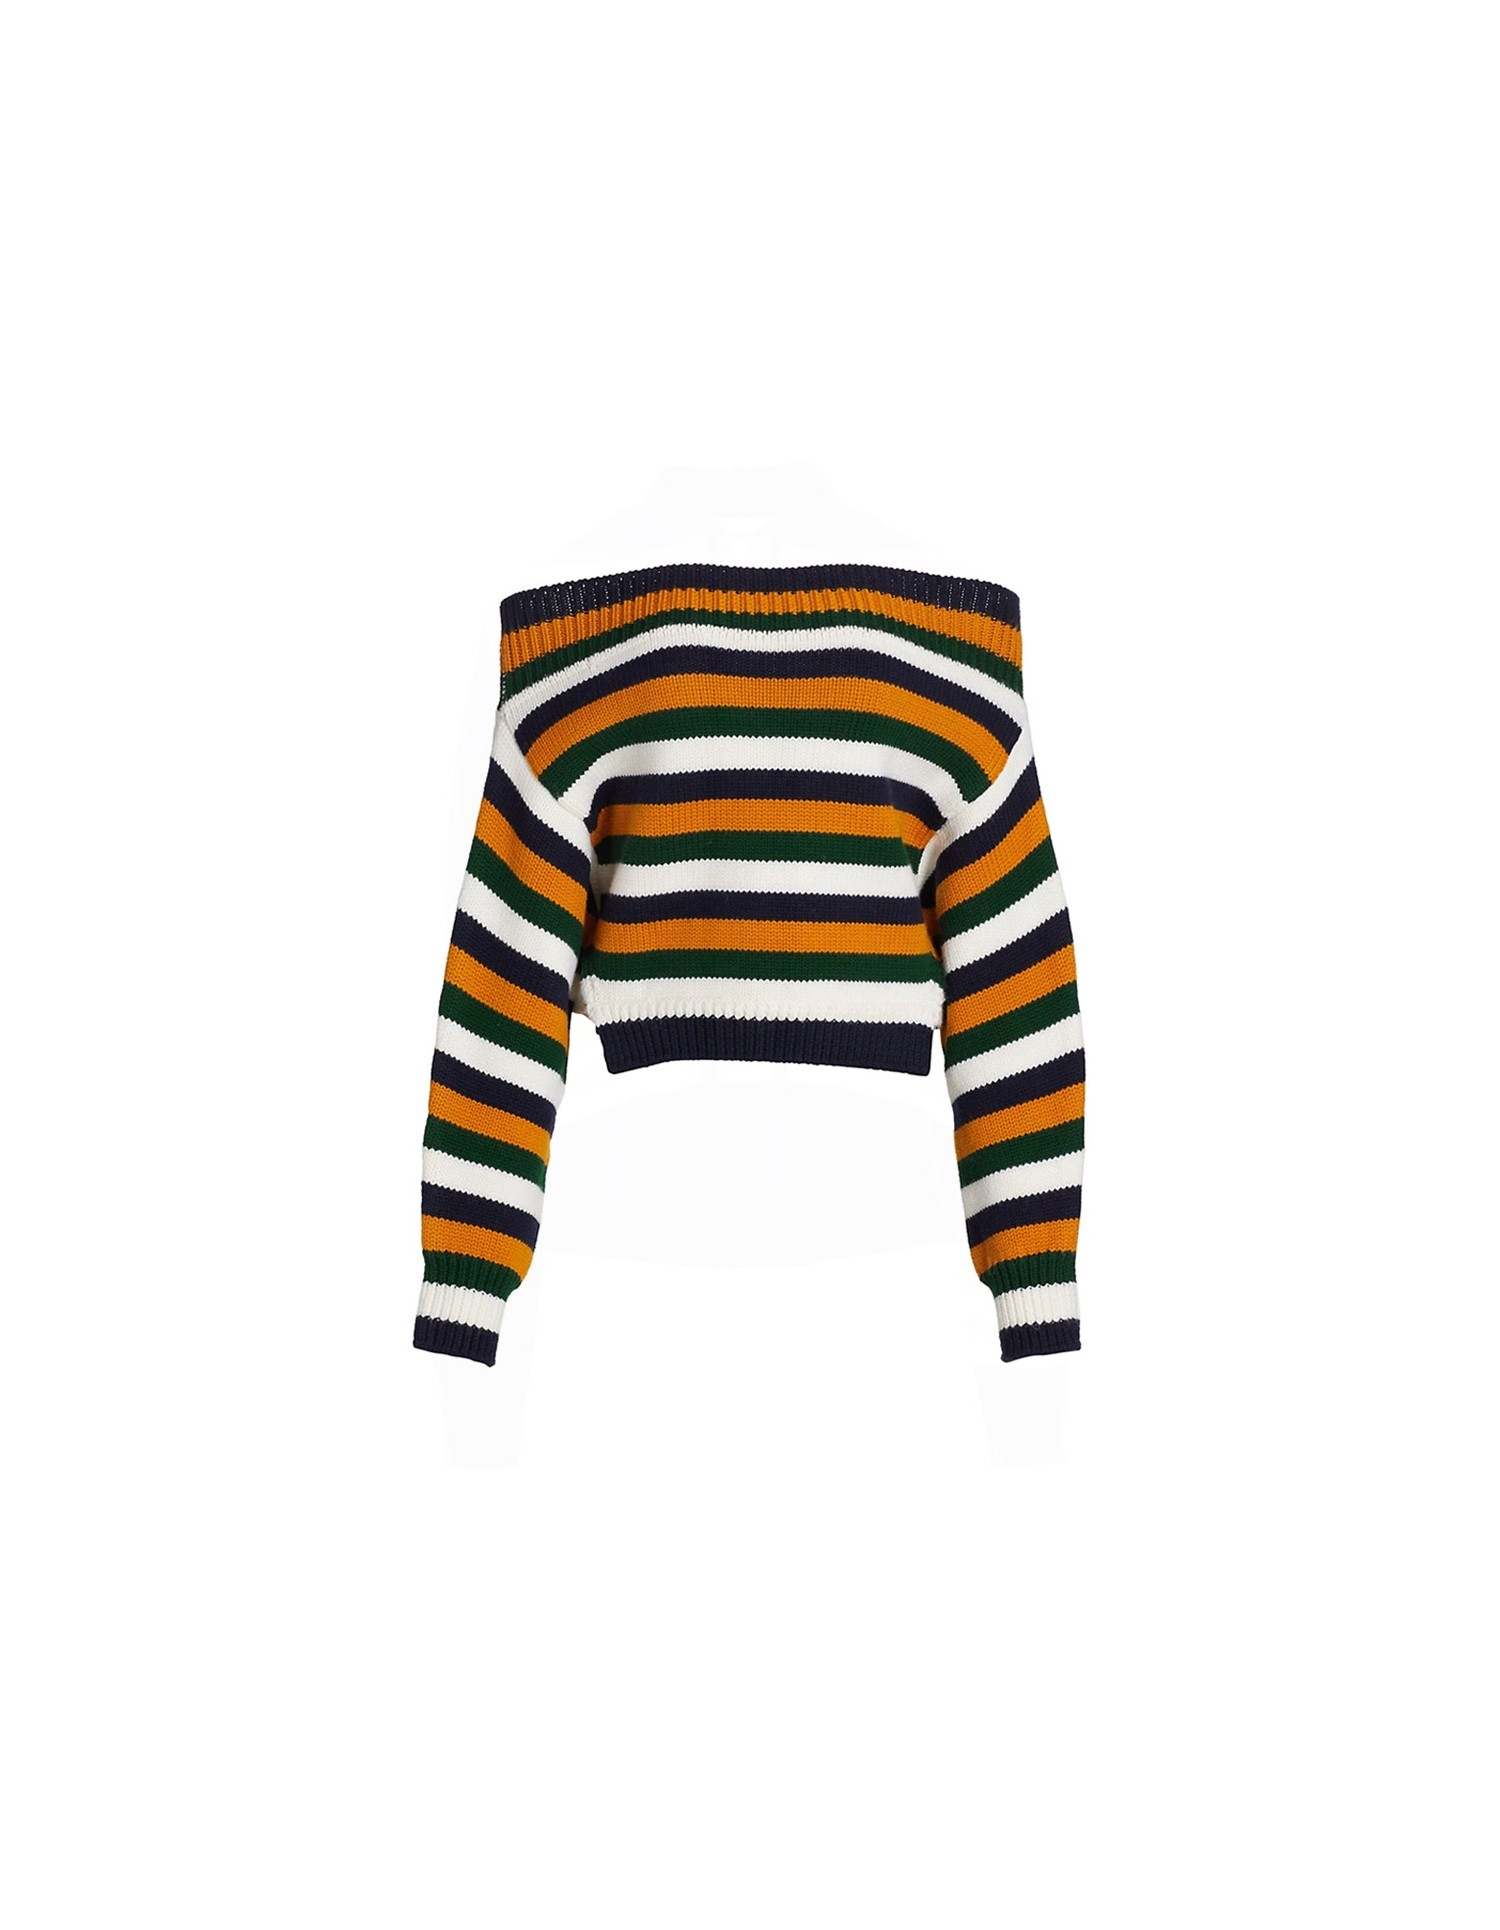 MONSE Cropped Off the Shoulder Sweater Flat Front